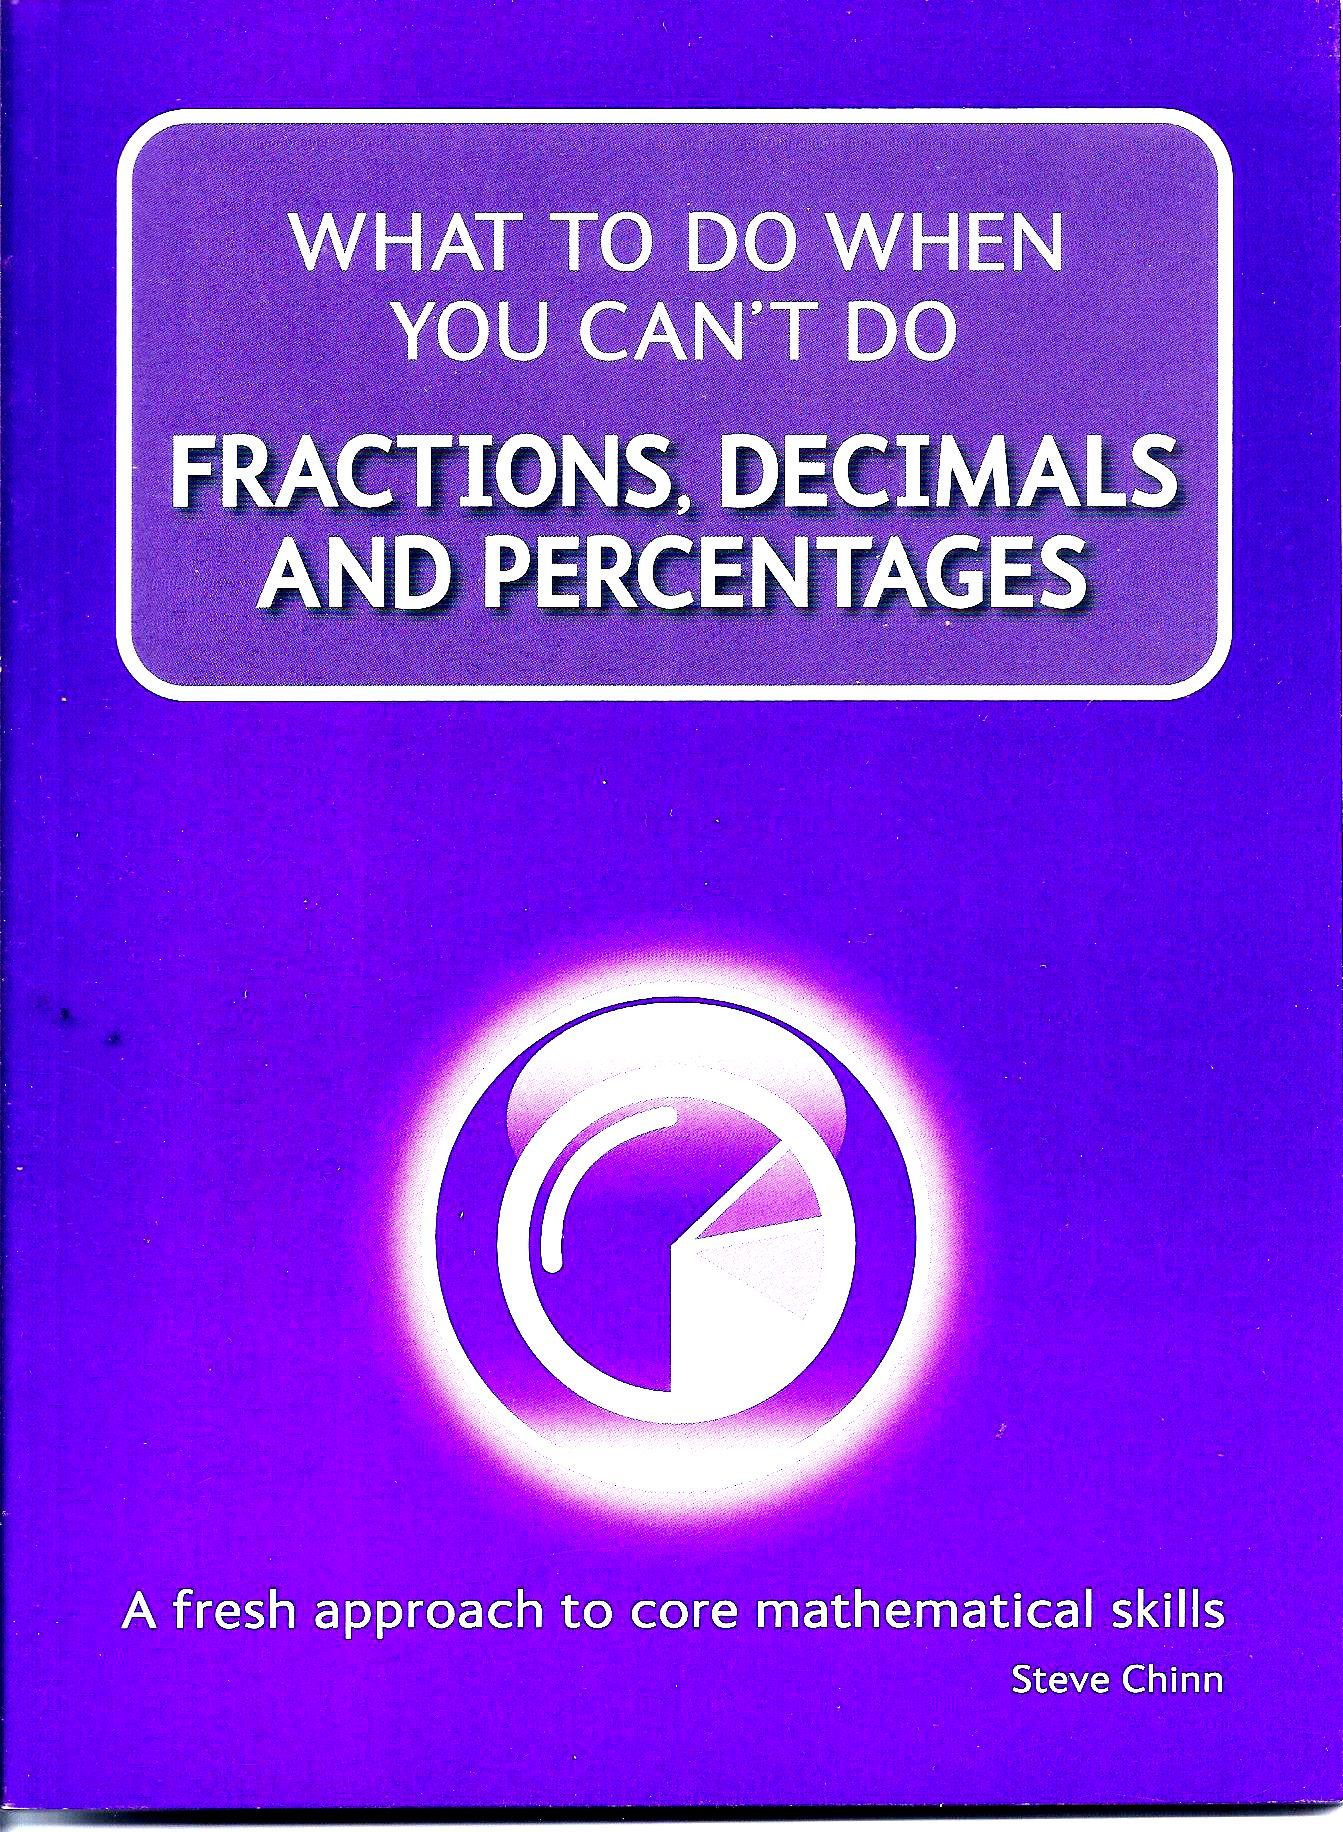 What to do when you can't do FRACTIONS, DECIMALS AND PERCENTAGES-0